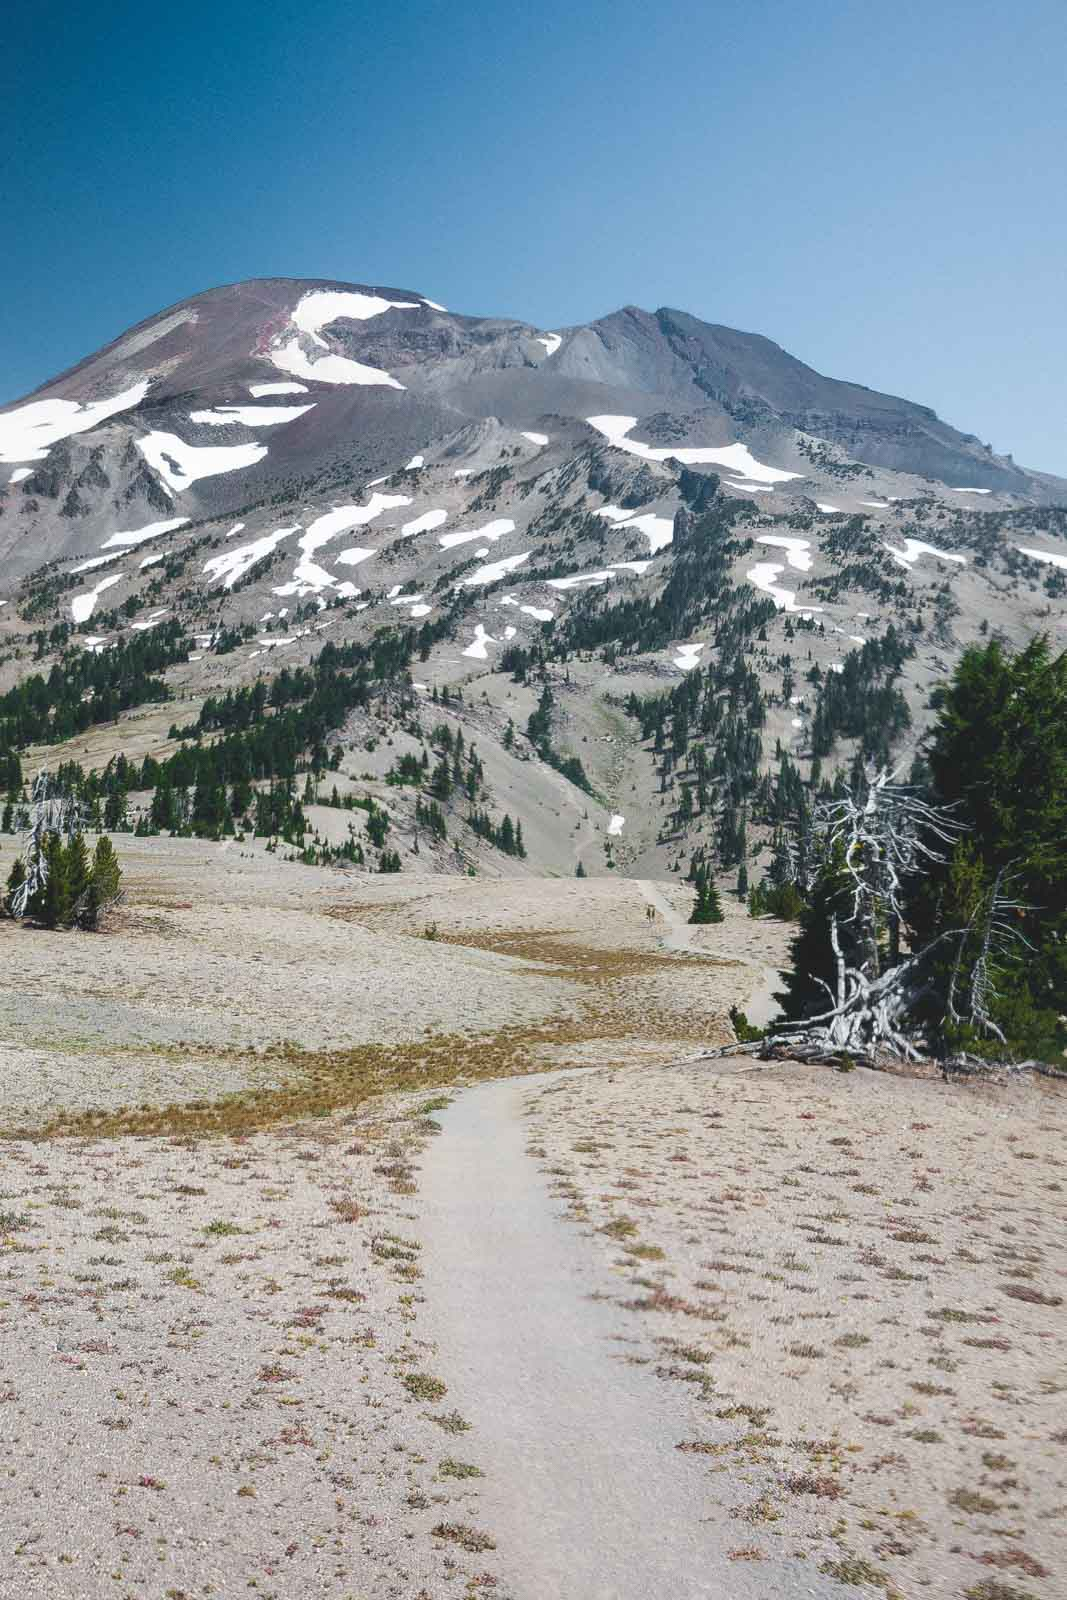 South Sister should be a hike you do when on an Oregon road trip